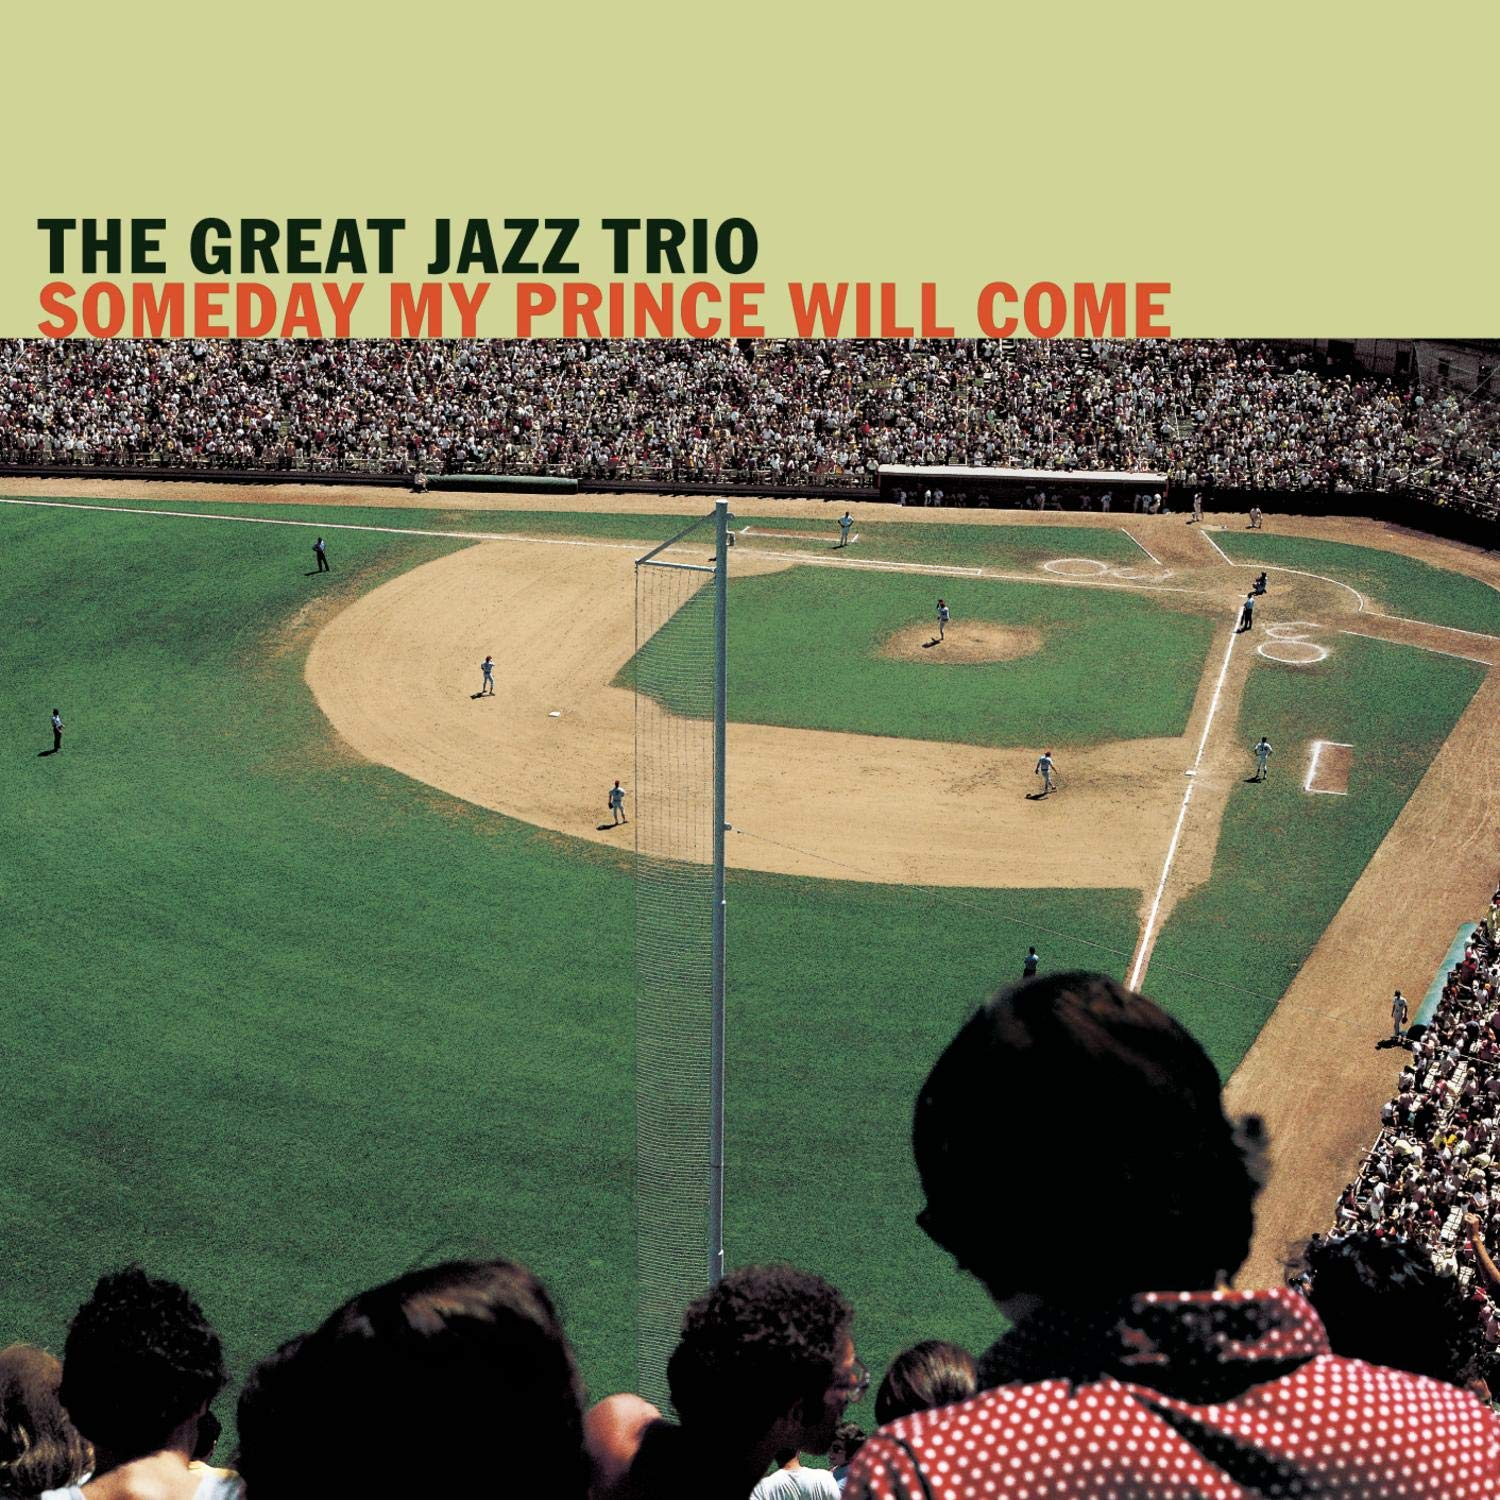 The Great Jazz Trio - Someday My Prince Will Come - Amazon.com Music